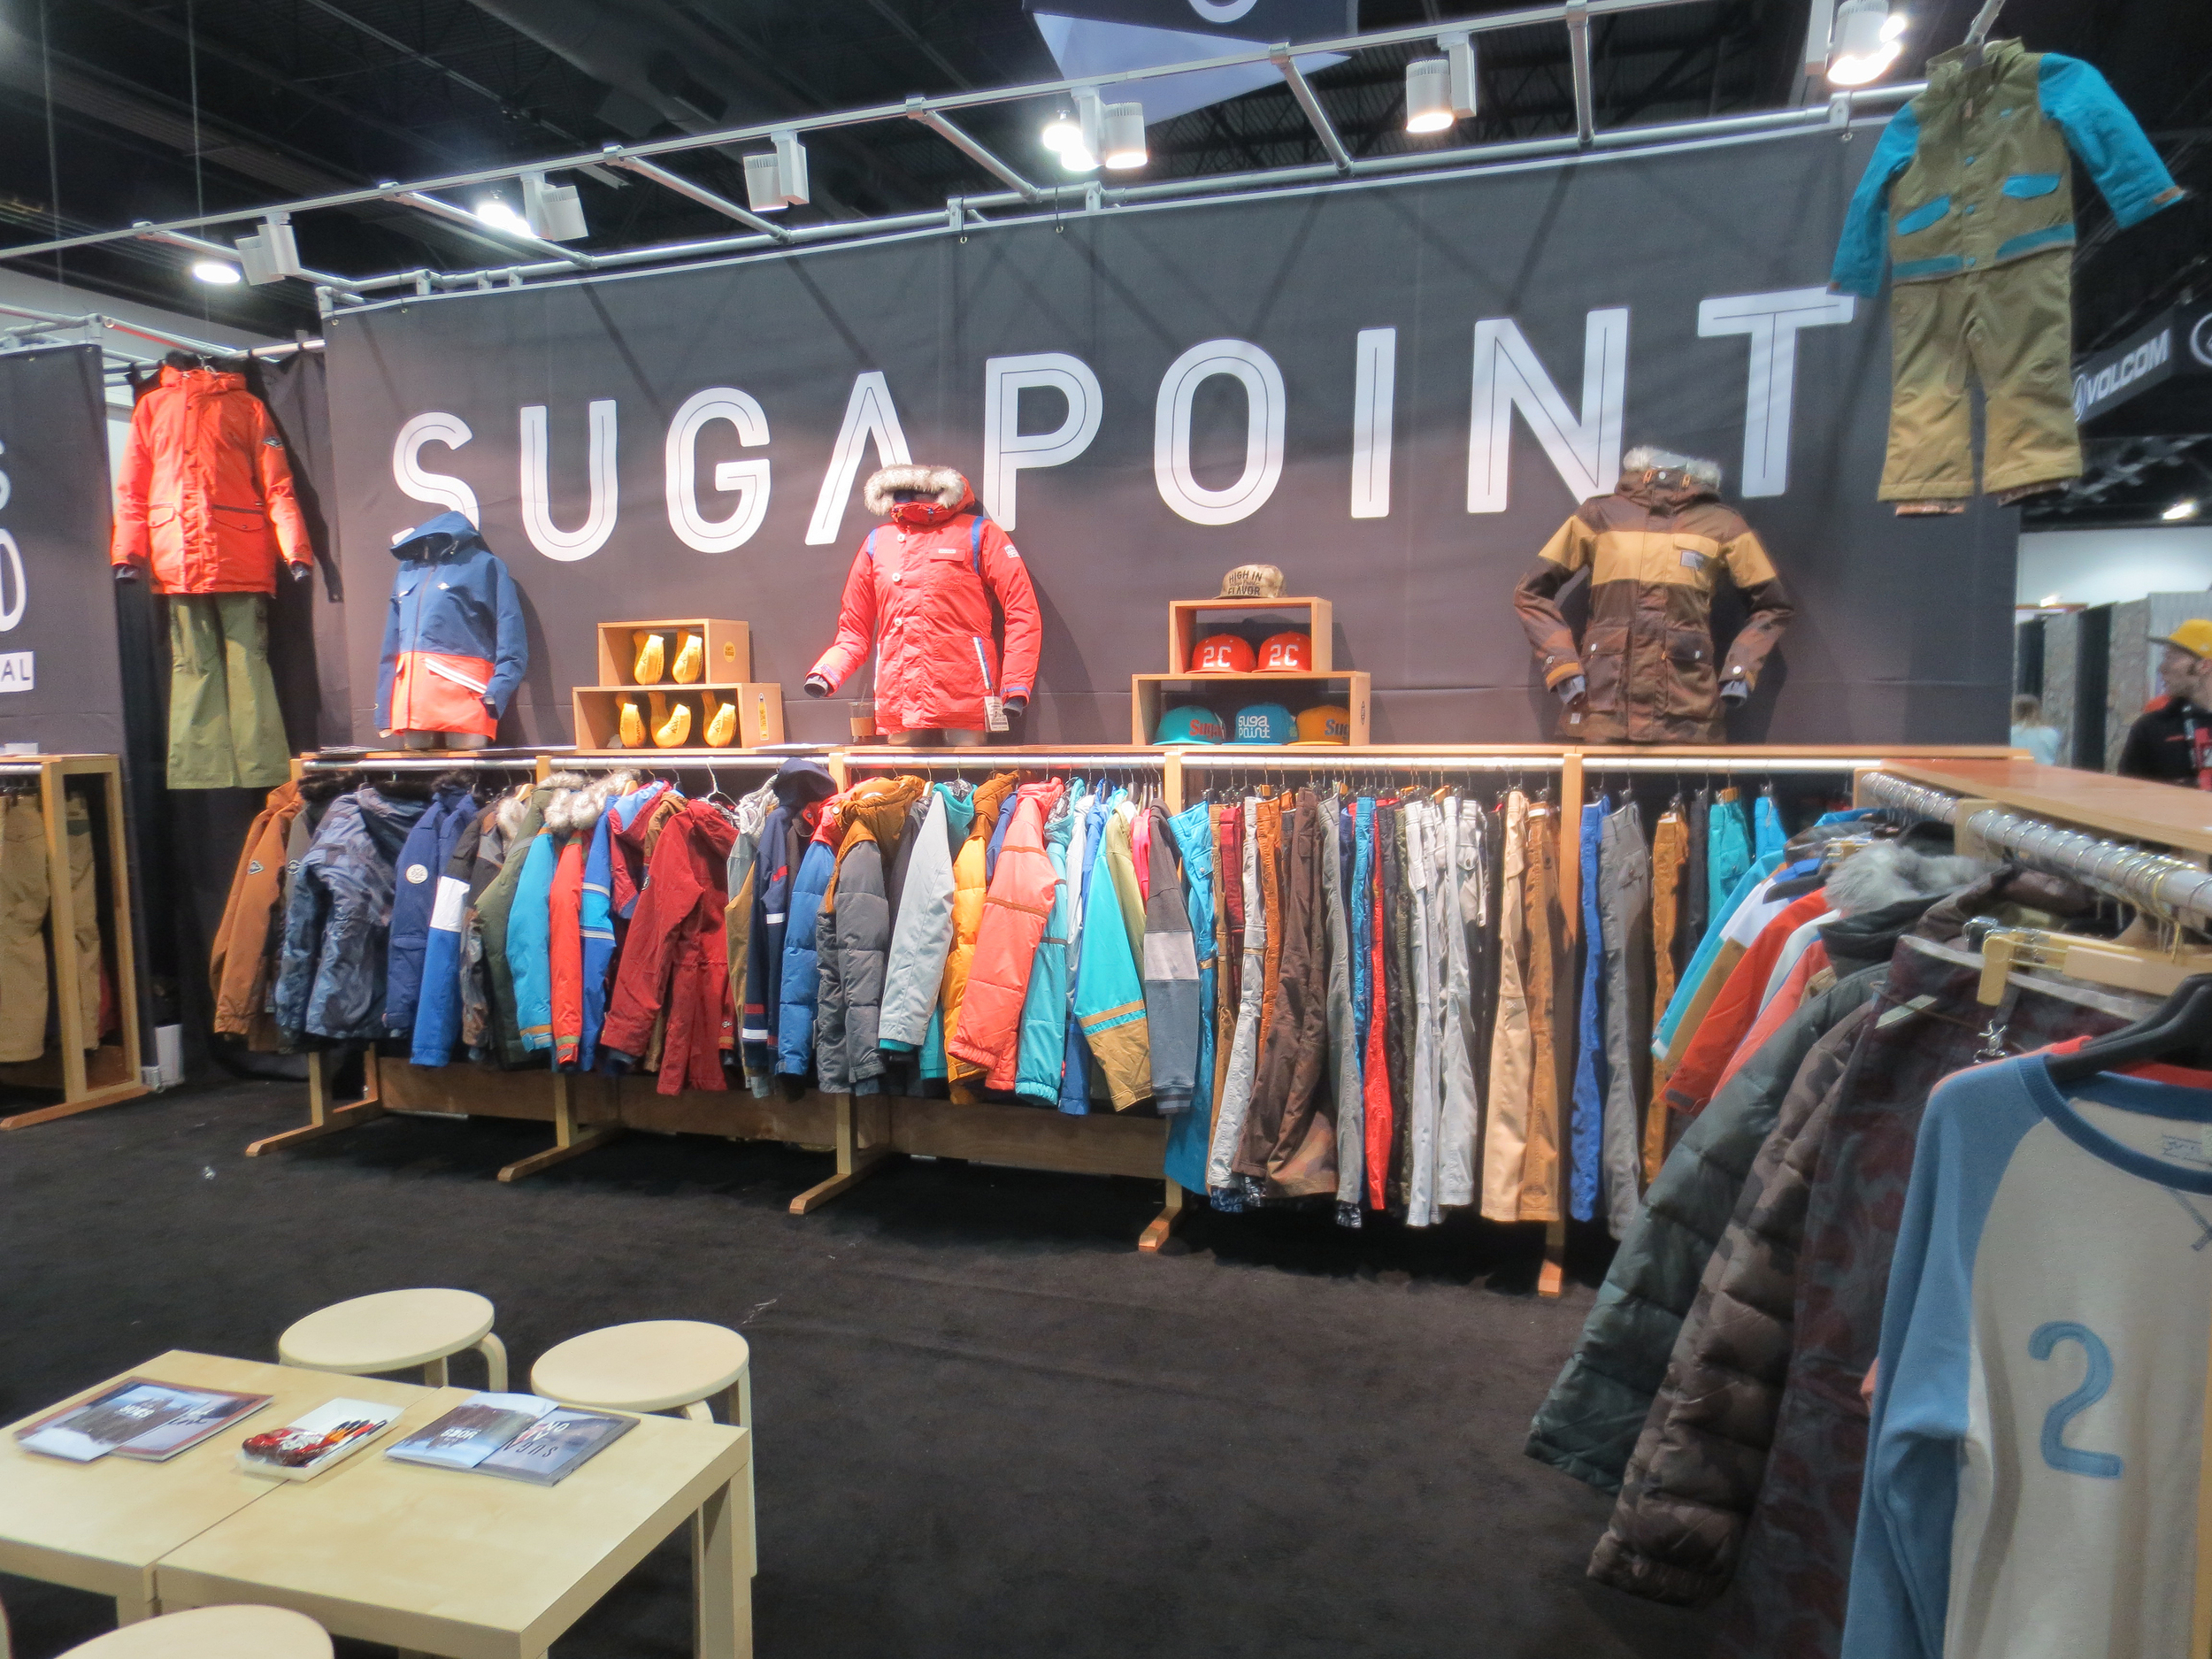 If you haven't seen or heard of Sugapoint, I suggest you check them out.